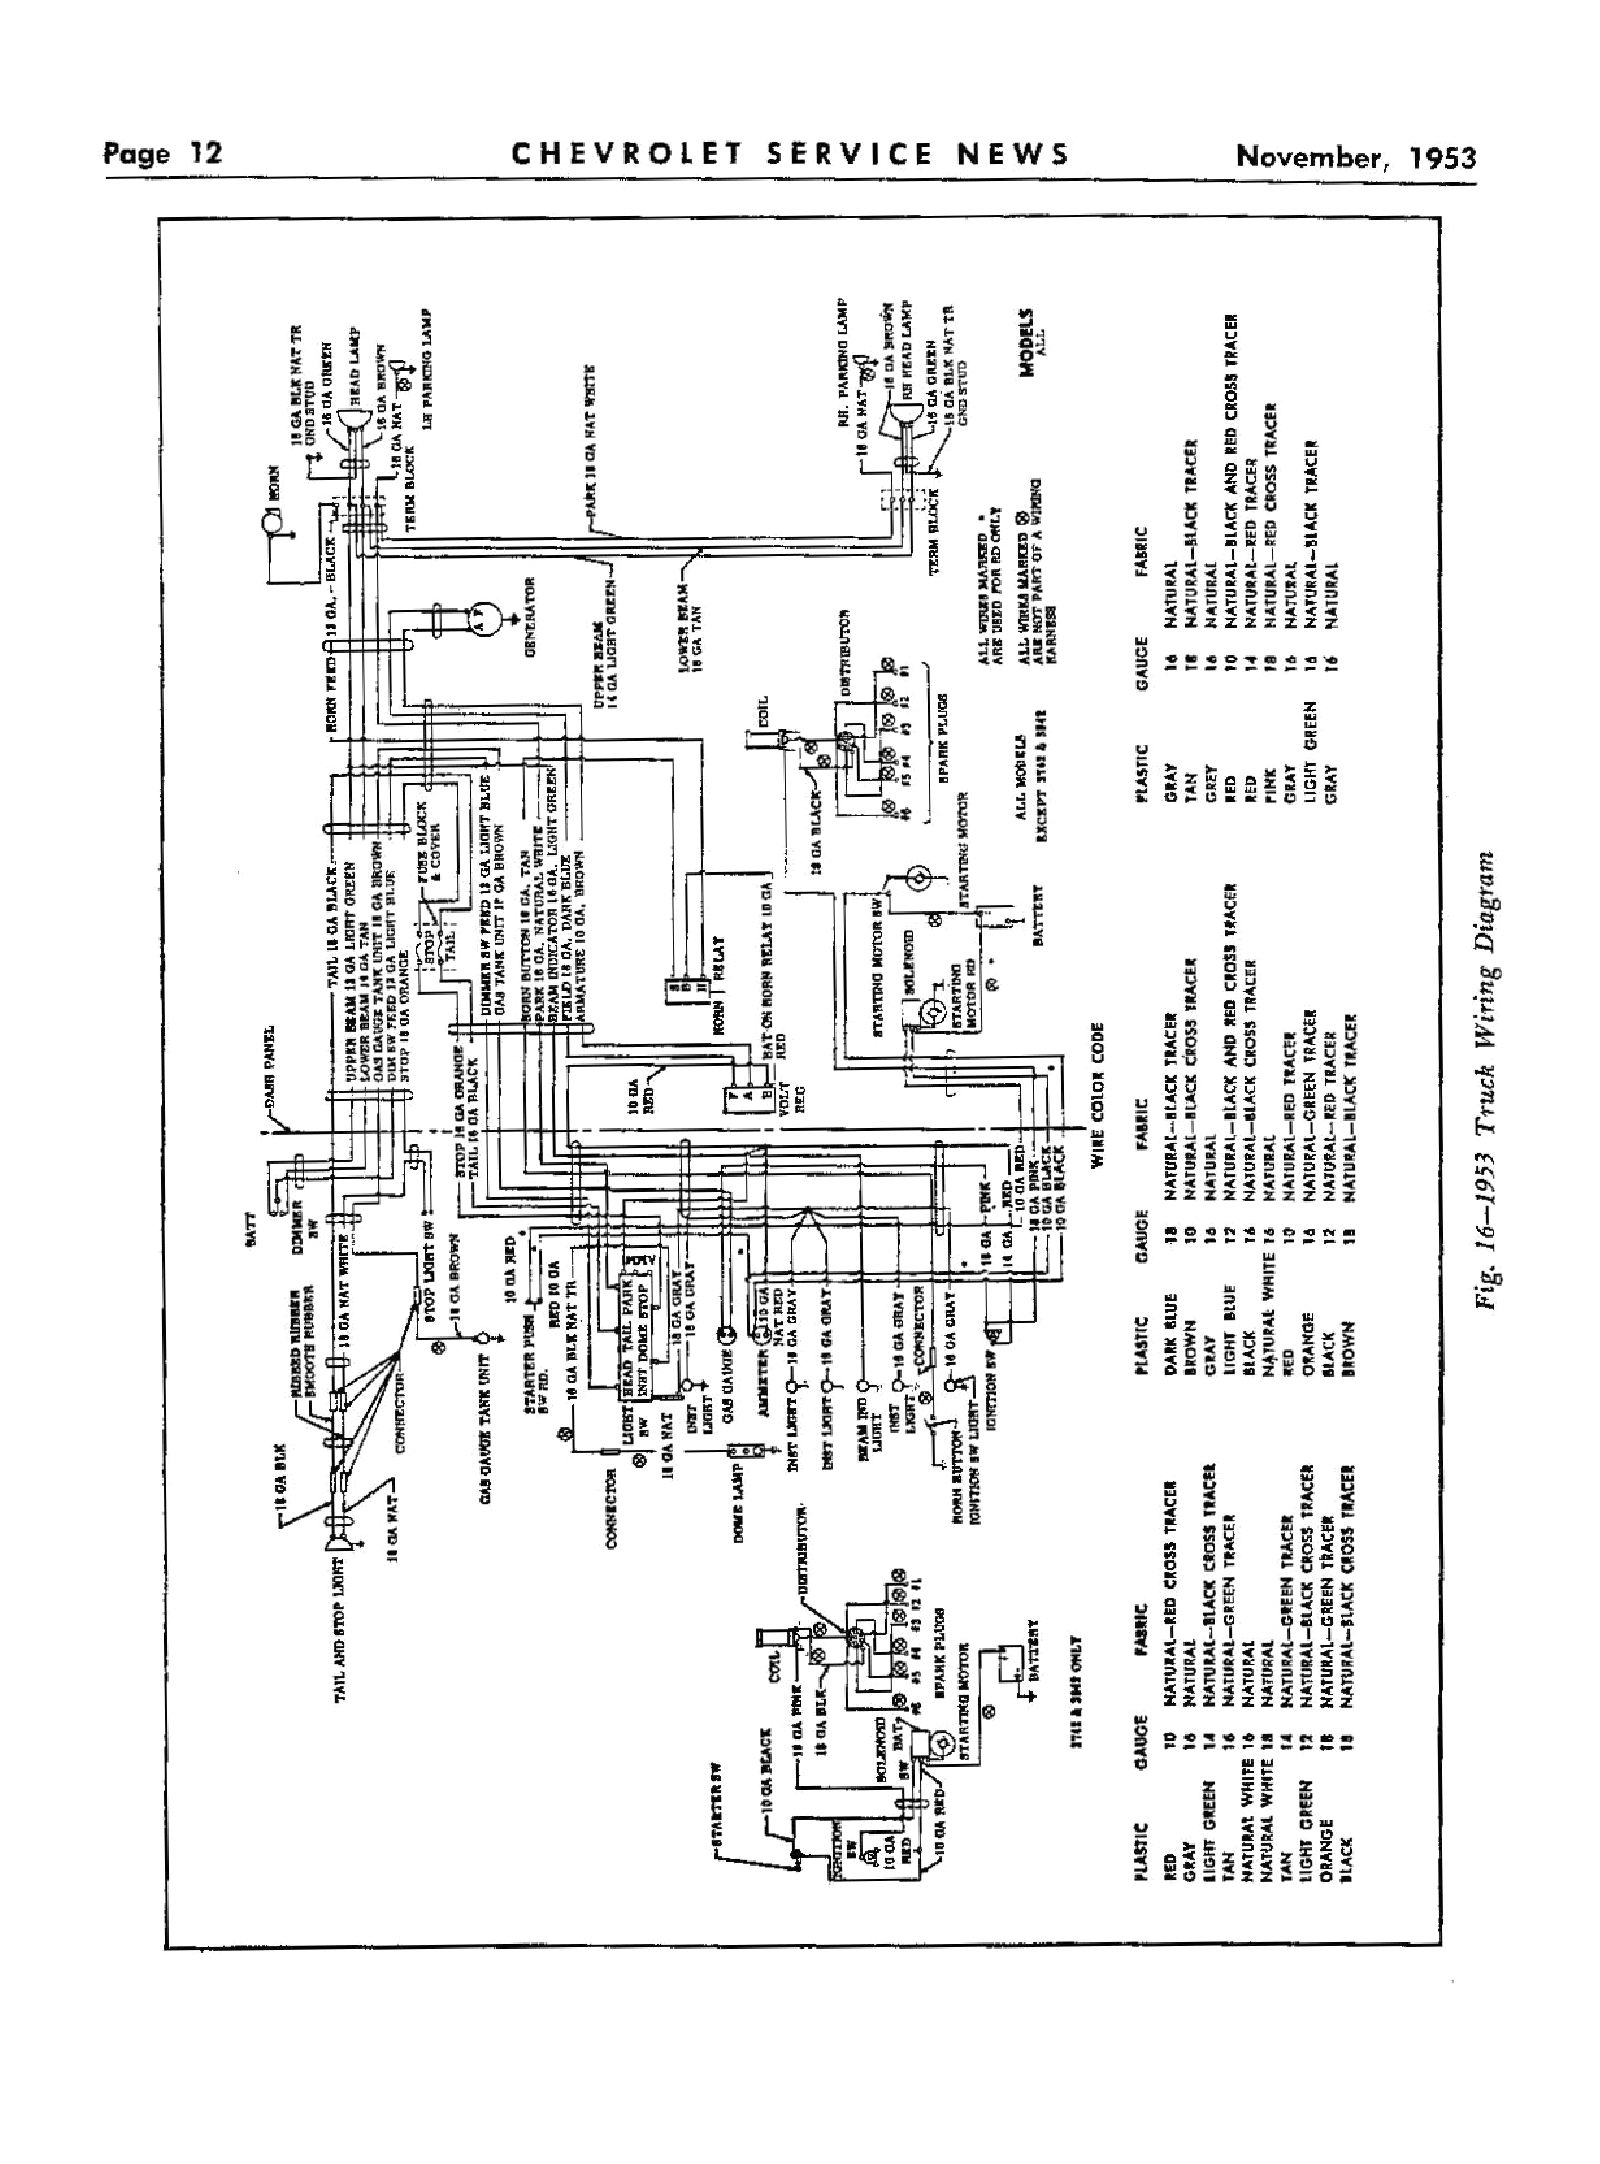 1950 Ford Truck Wiring Experience Of Diagram 1949 Chevy Vin Tag Harness In Addition As Rh 3 6 2 Medi